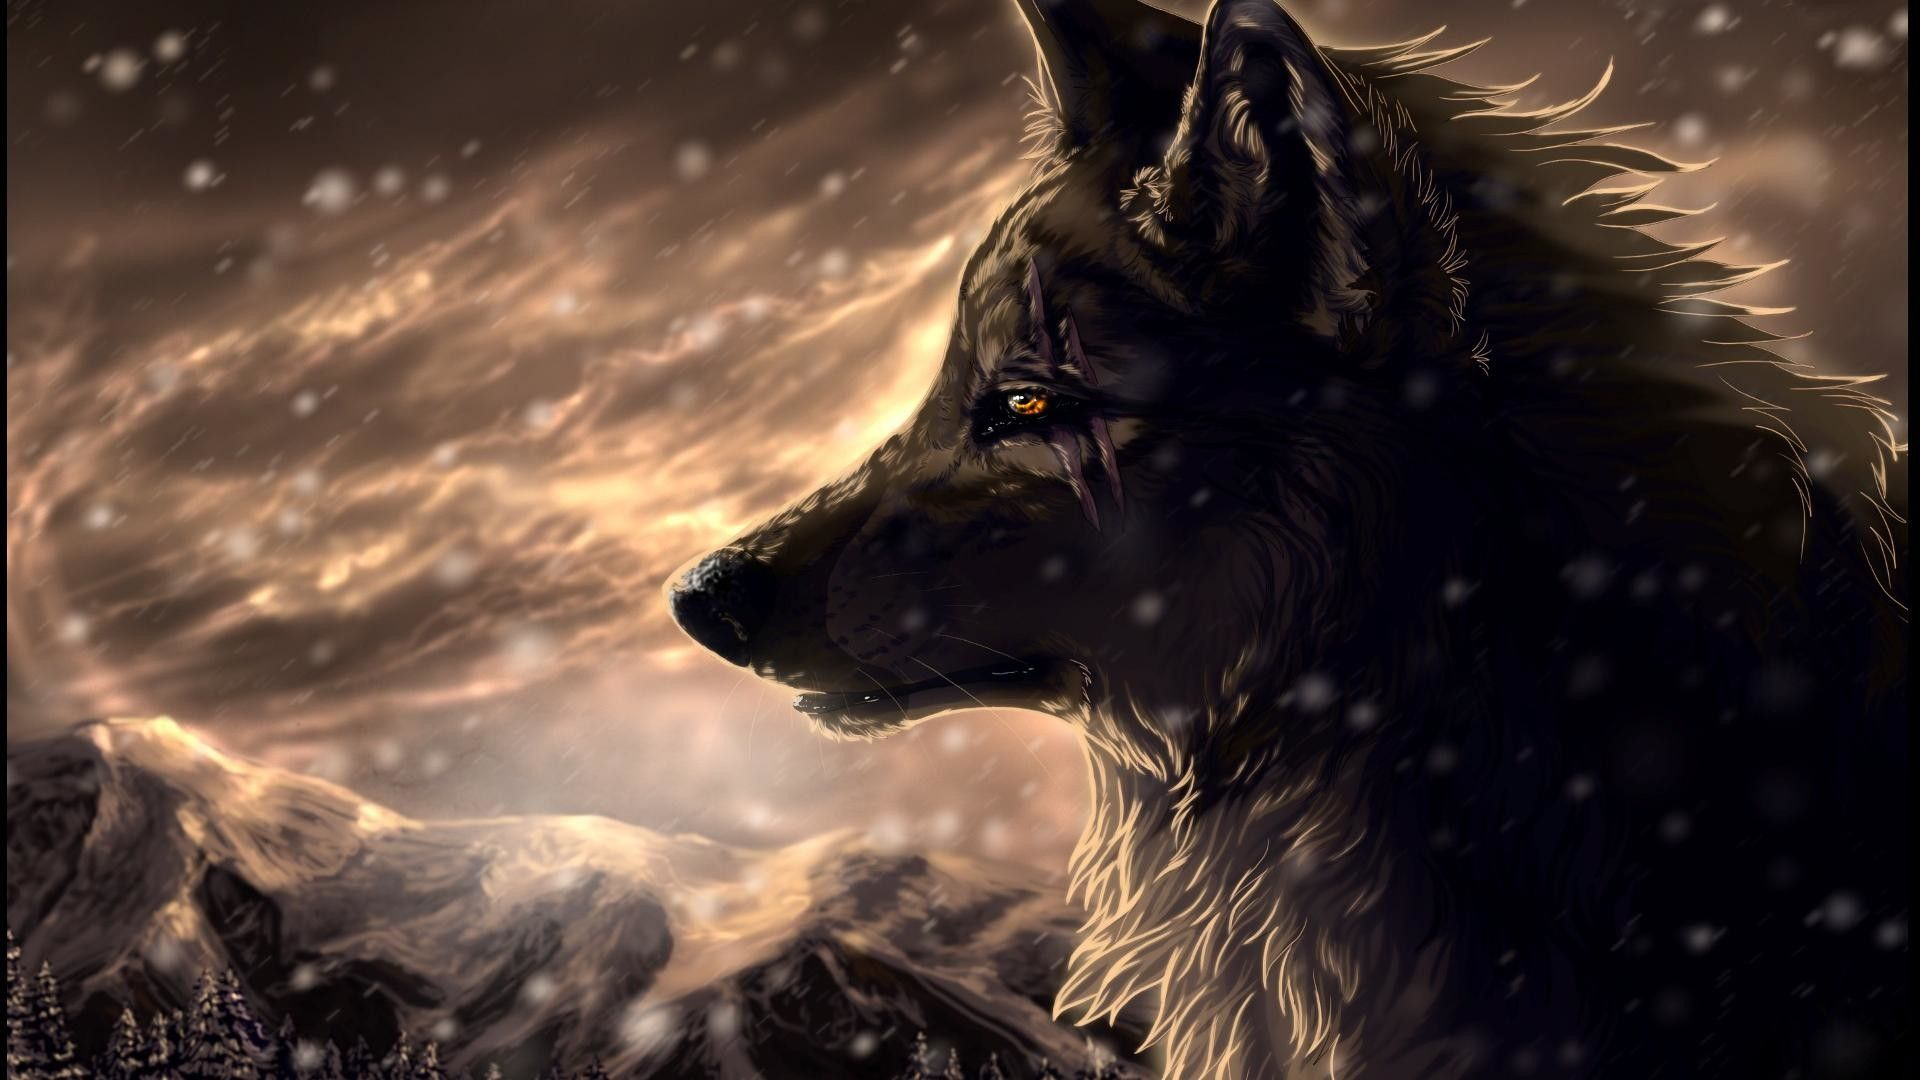 Lone Wolf HD Wallpapers - Top Free Lone Wolf HD Backgrounds